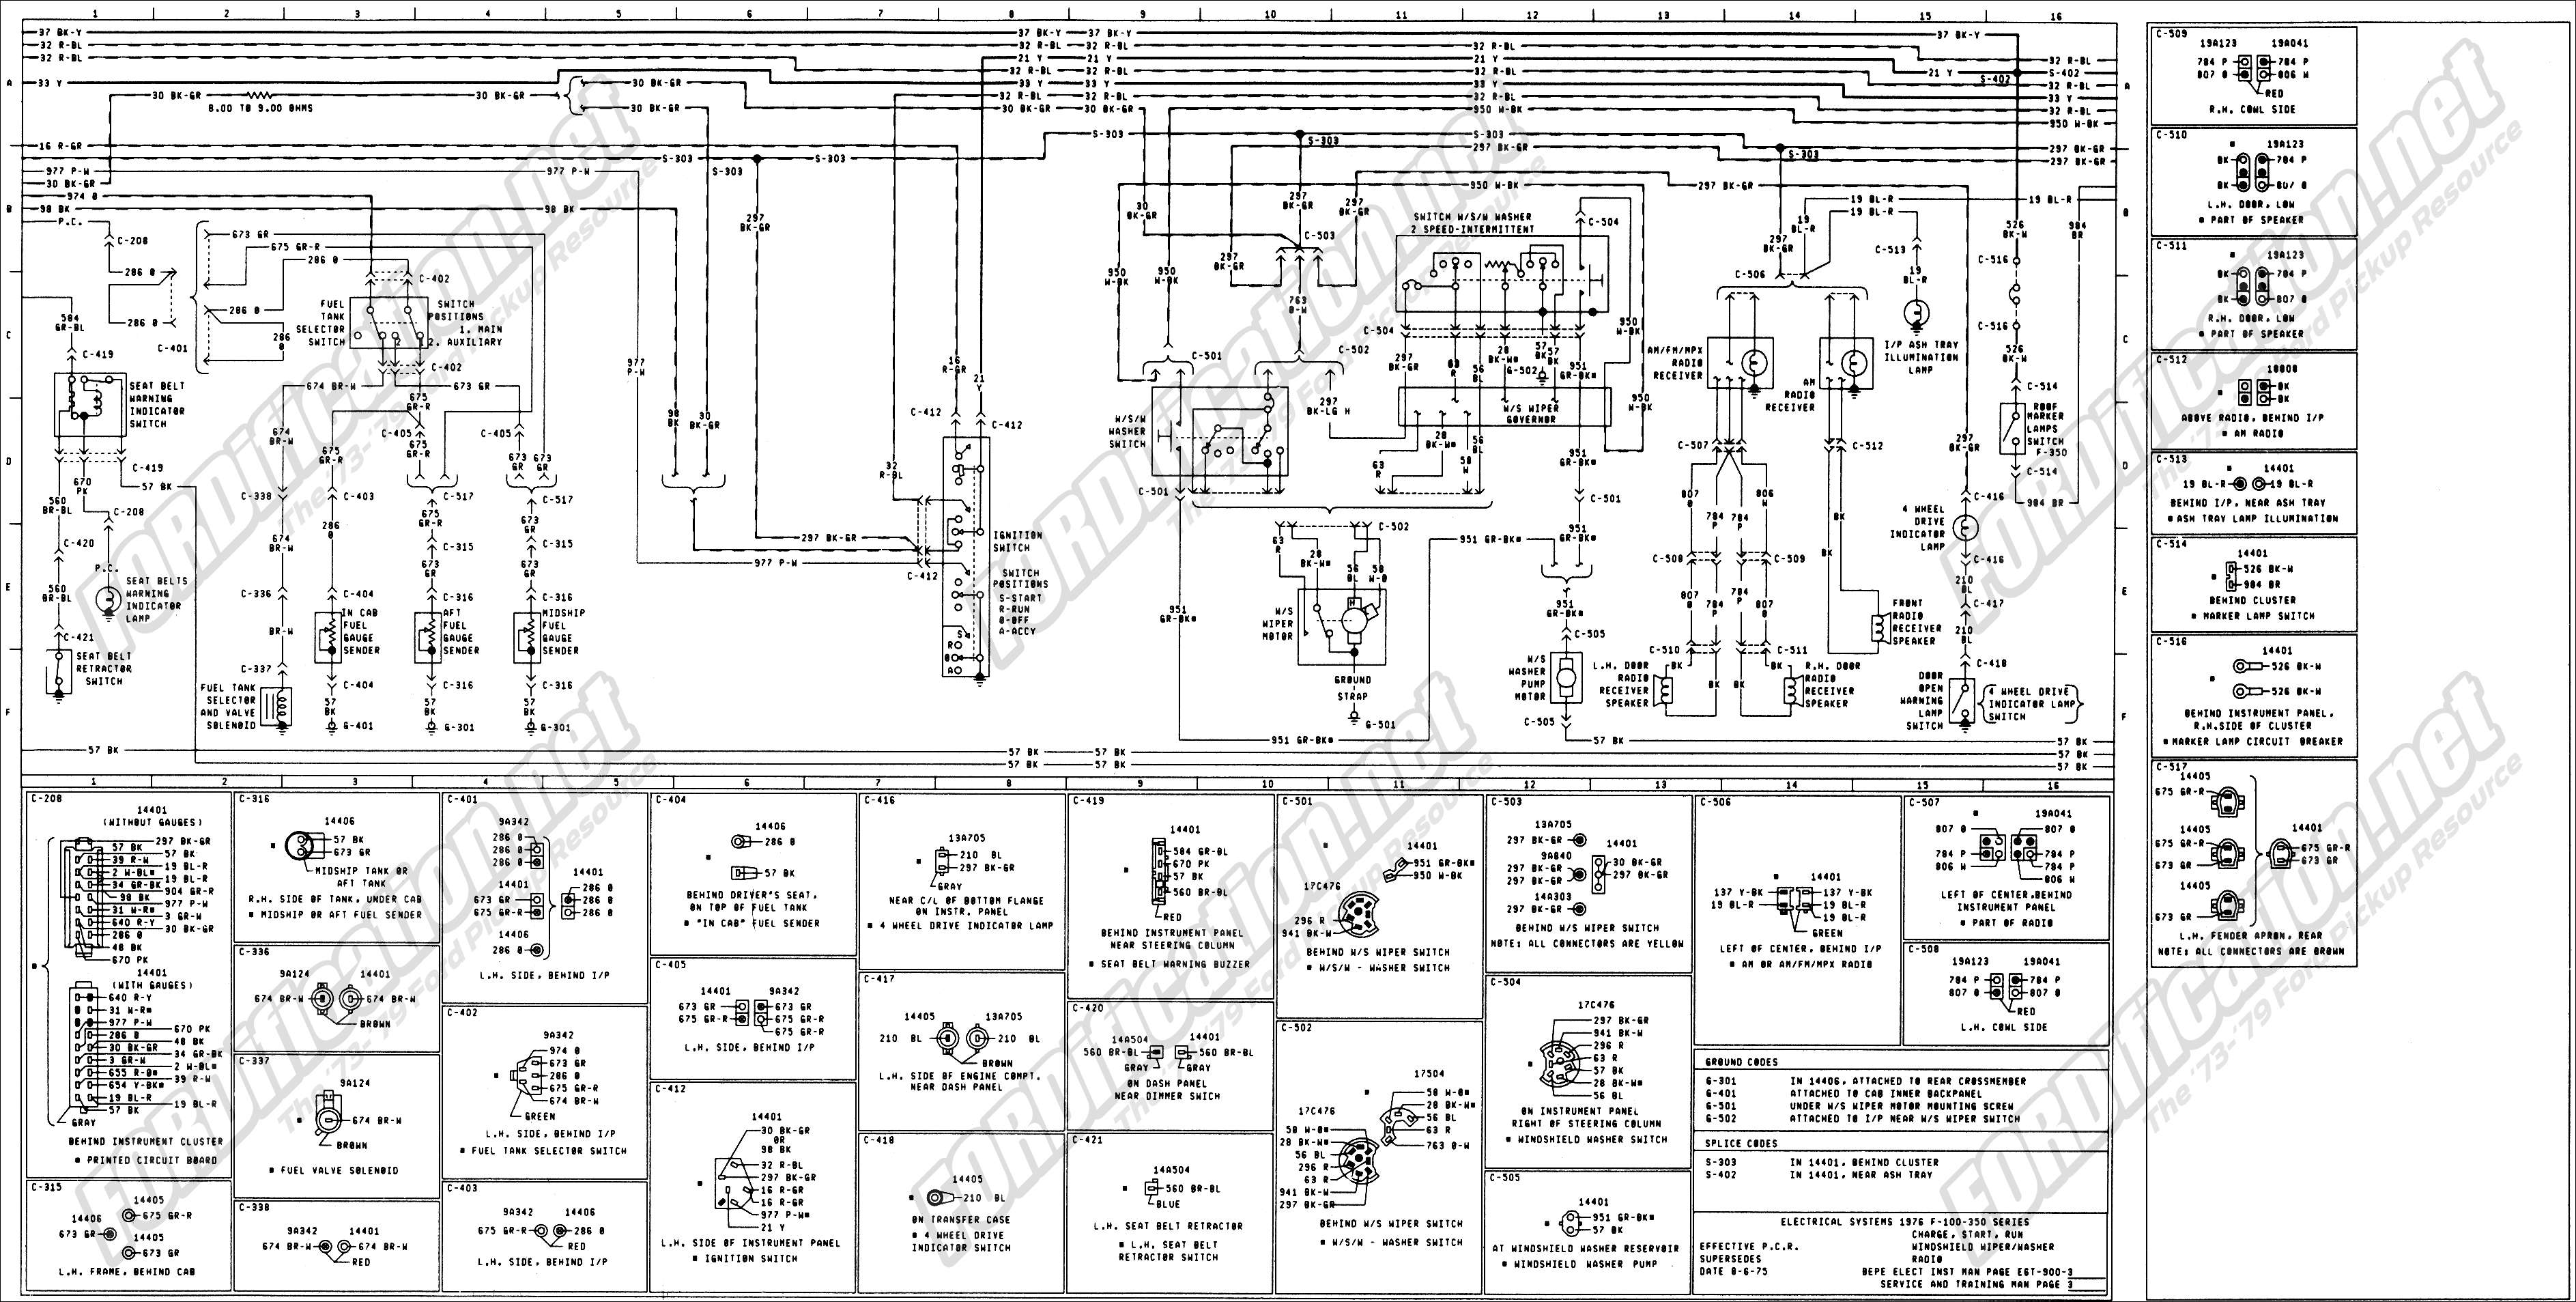 1973 1979 ford truck wiring diagrams schematics fordification net 1979 Ford Fuse Box Diagram 1973 1979 ford truck wiring diagrams schematics fordification net best of f250 diagram